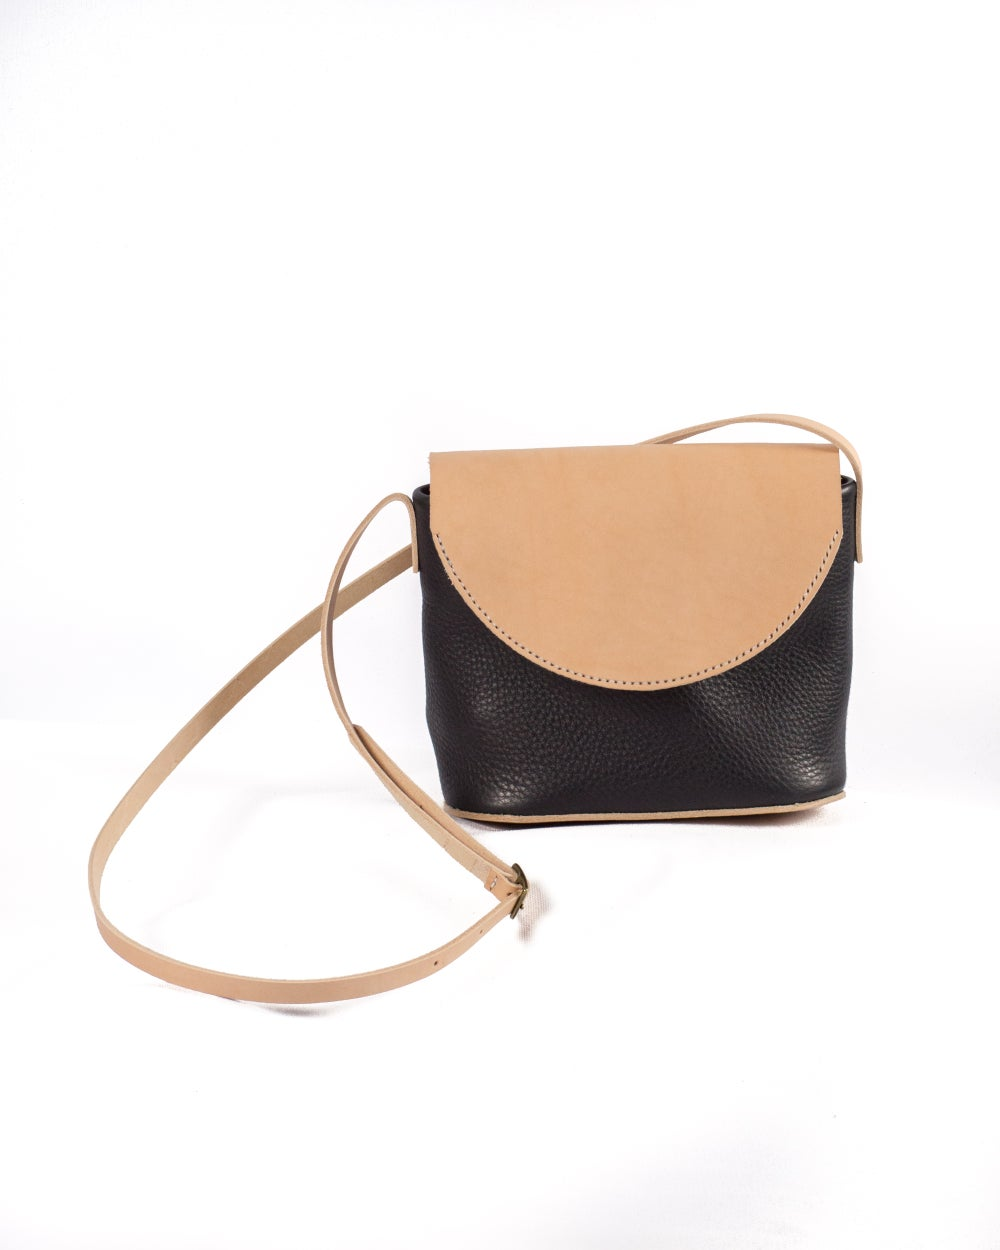 Image of Flap Crossbody in Black